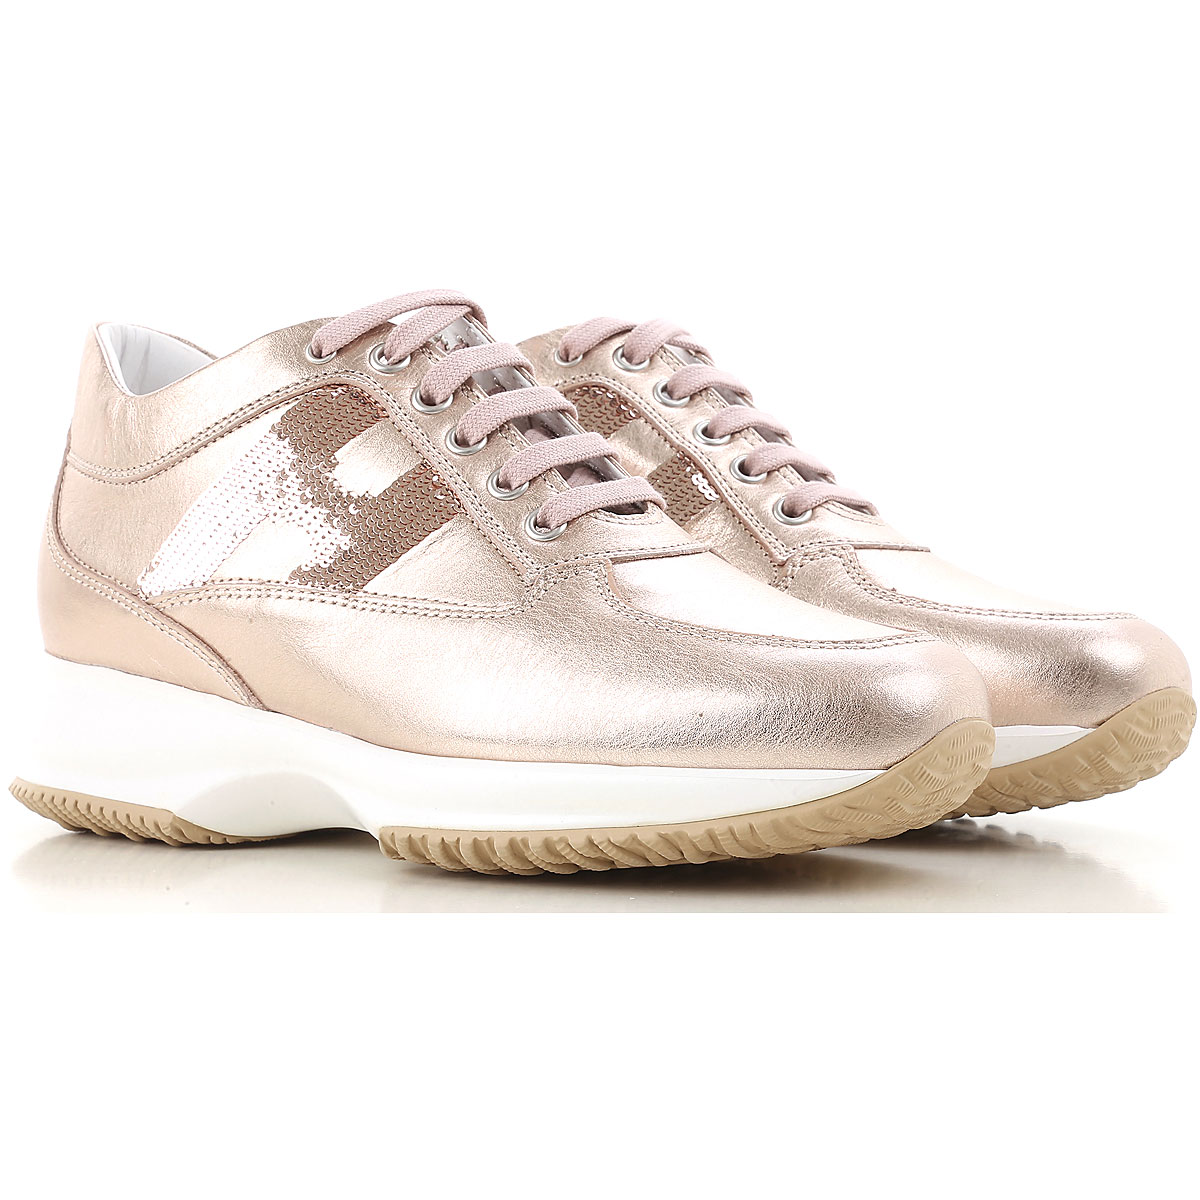 Hogan Sneakers for Women, Metal Pink, Leather, 2017, 10 6 6.5 7 8 8.5 9 9.5